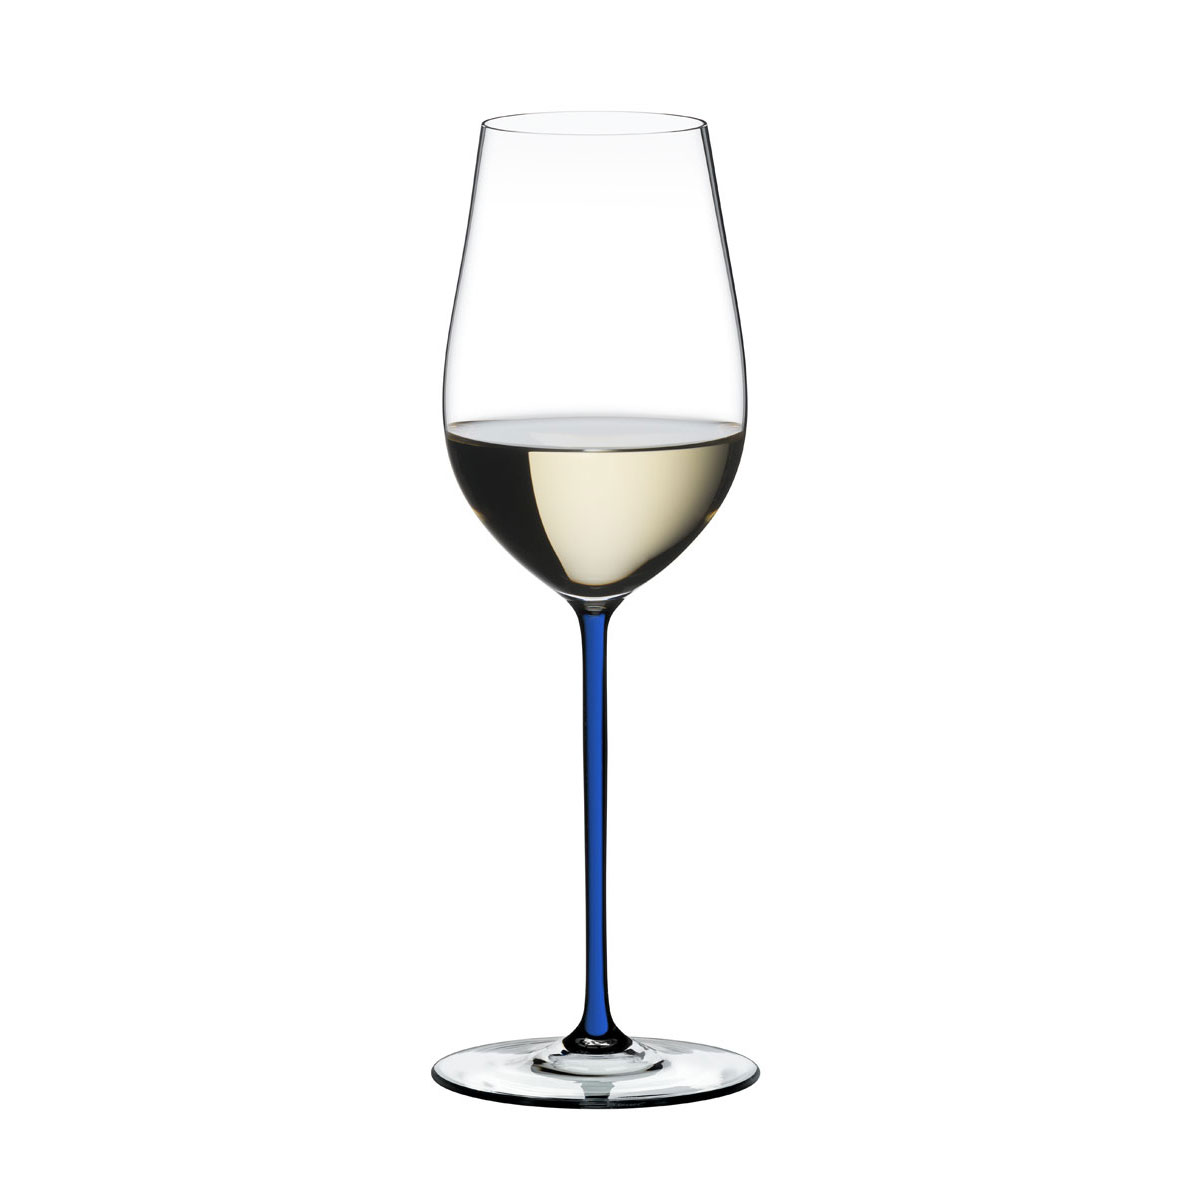 Riedel Fatto A Mano, Riesling, Zinfandel Crystal Wine Glass, Blue